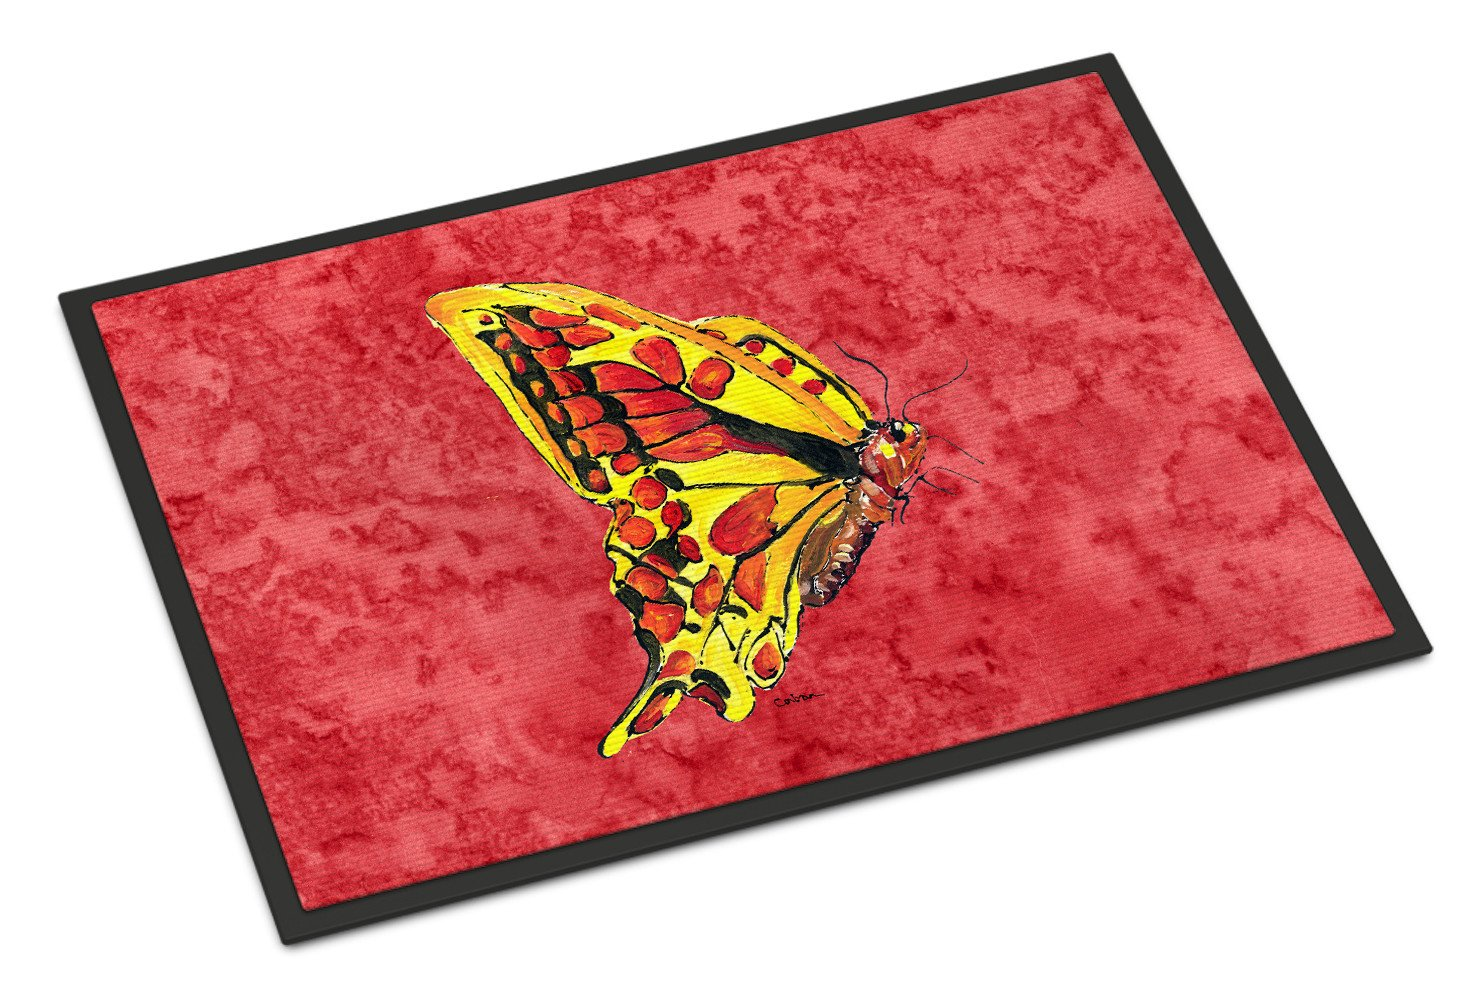 Butterfly on Red Indoor or Outdoor Mat 24x36 Doormat - the-store.com